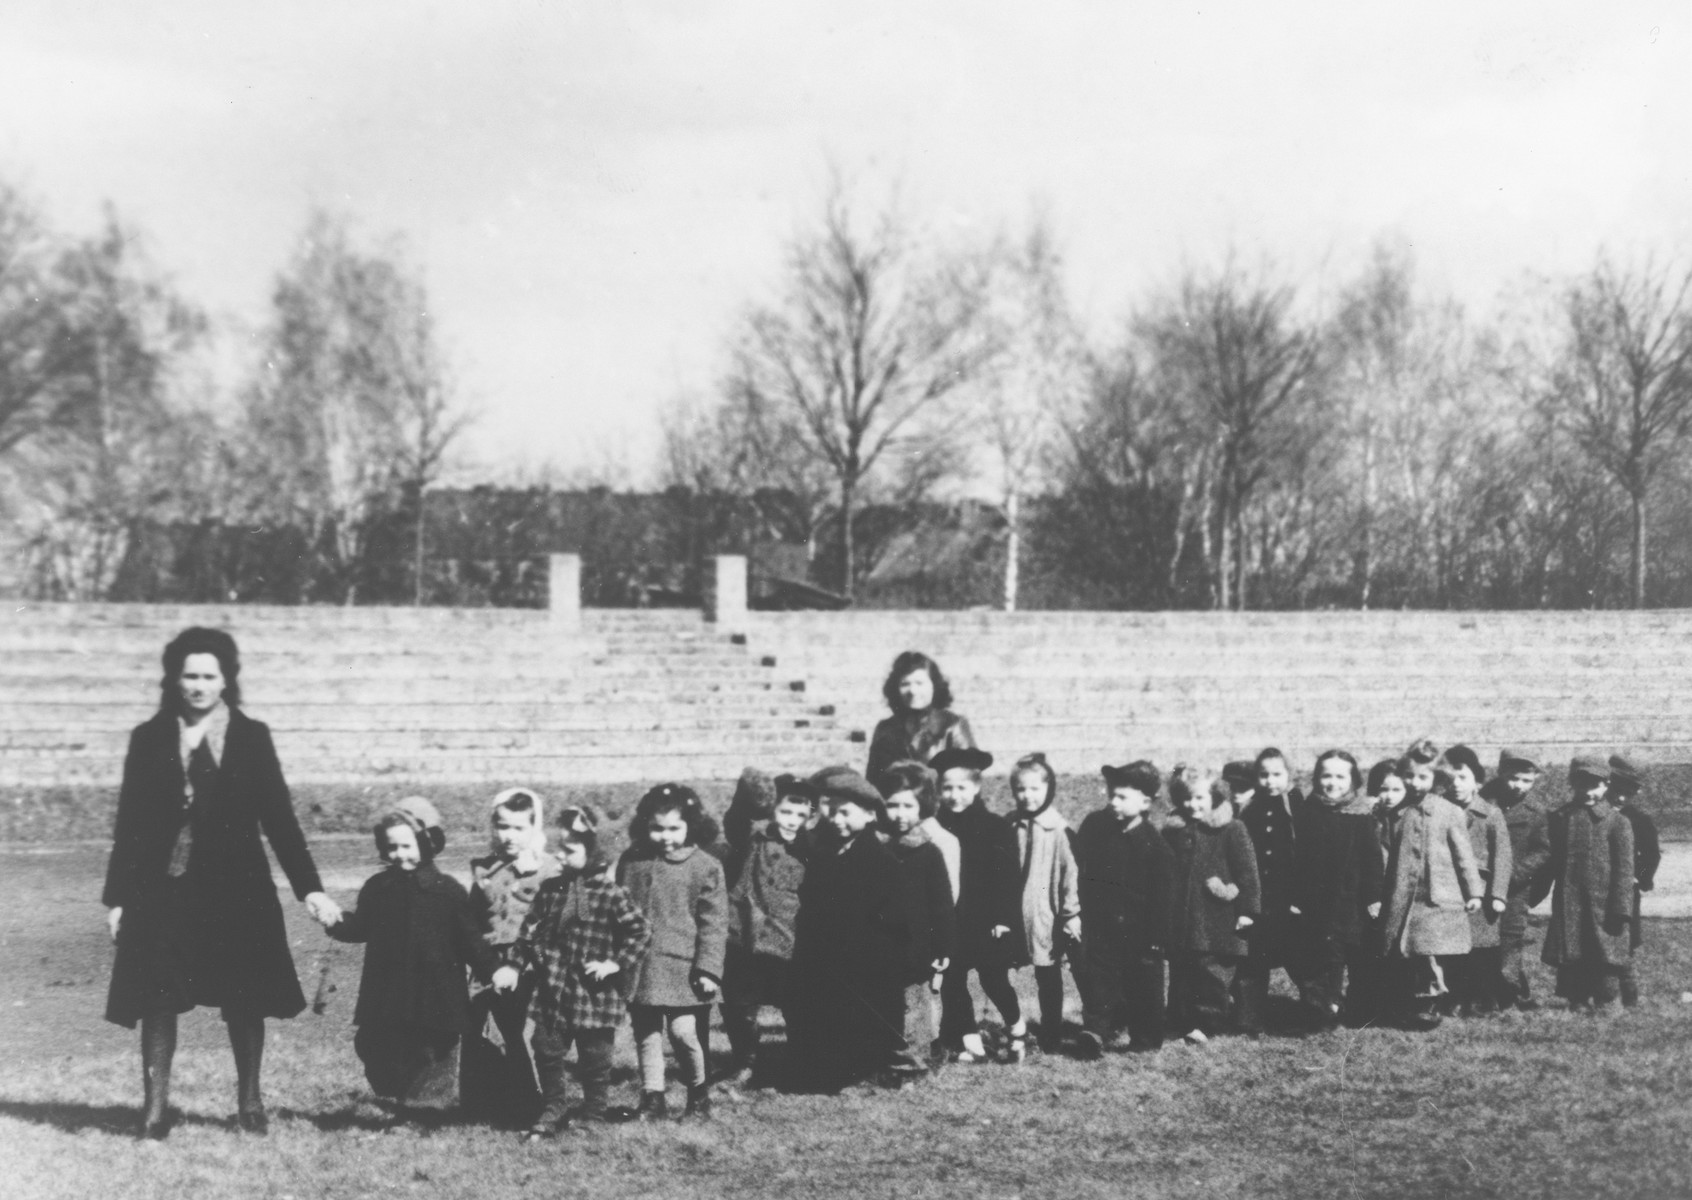 Preschoolers in the Mariendorf displaced persons camp go for a walk.  Those pictured include Maya Rosenfeld (later Freed Brown).